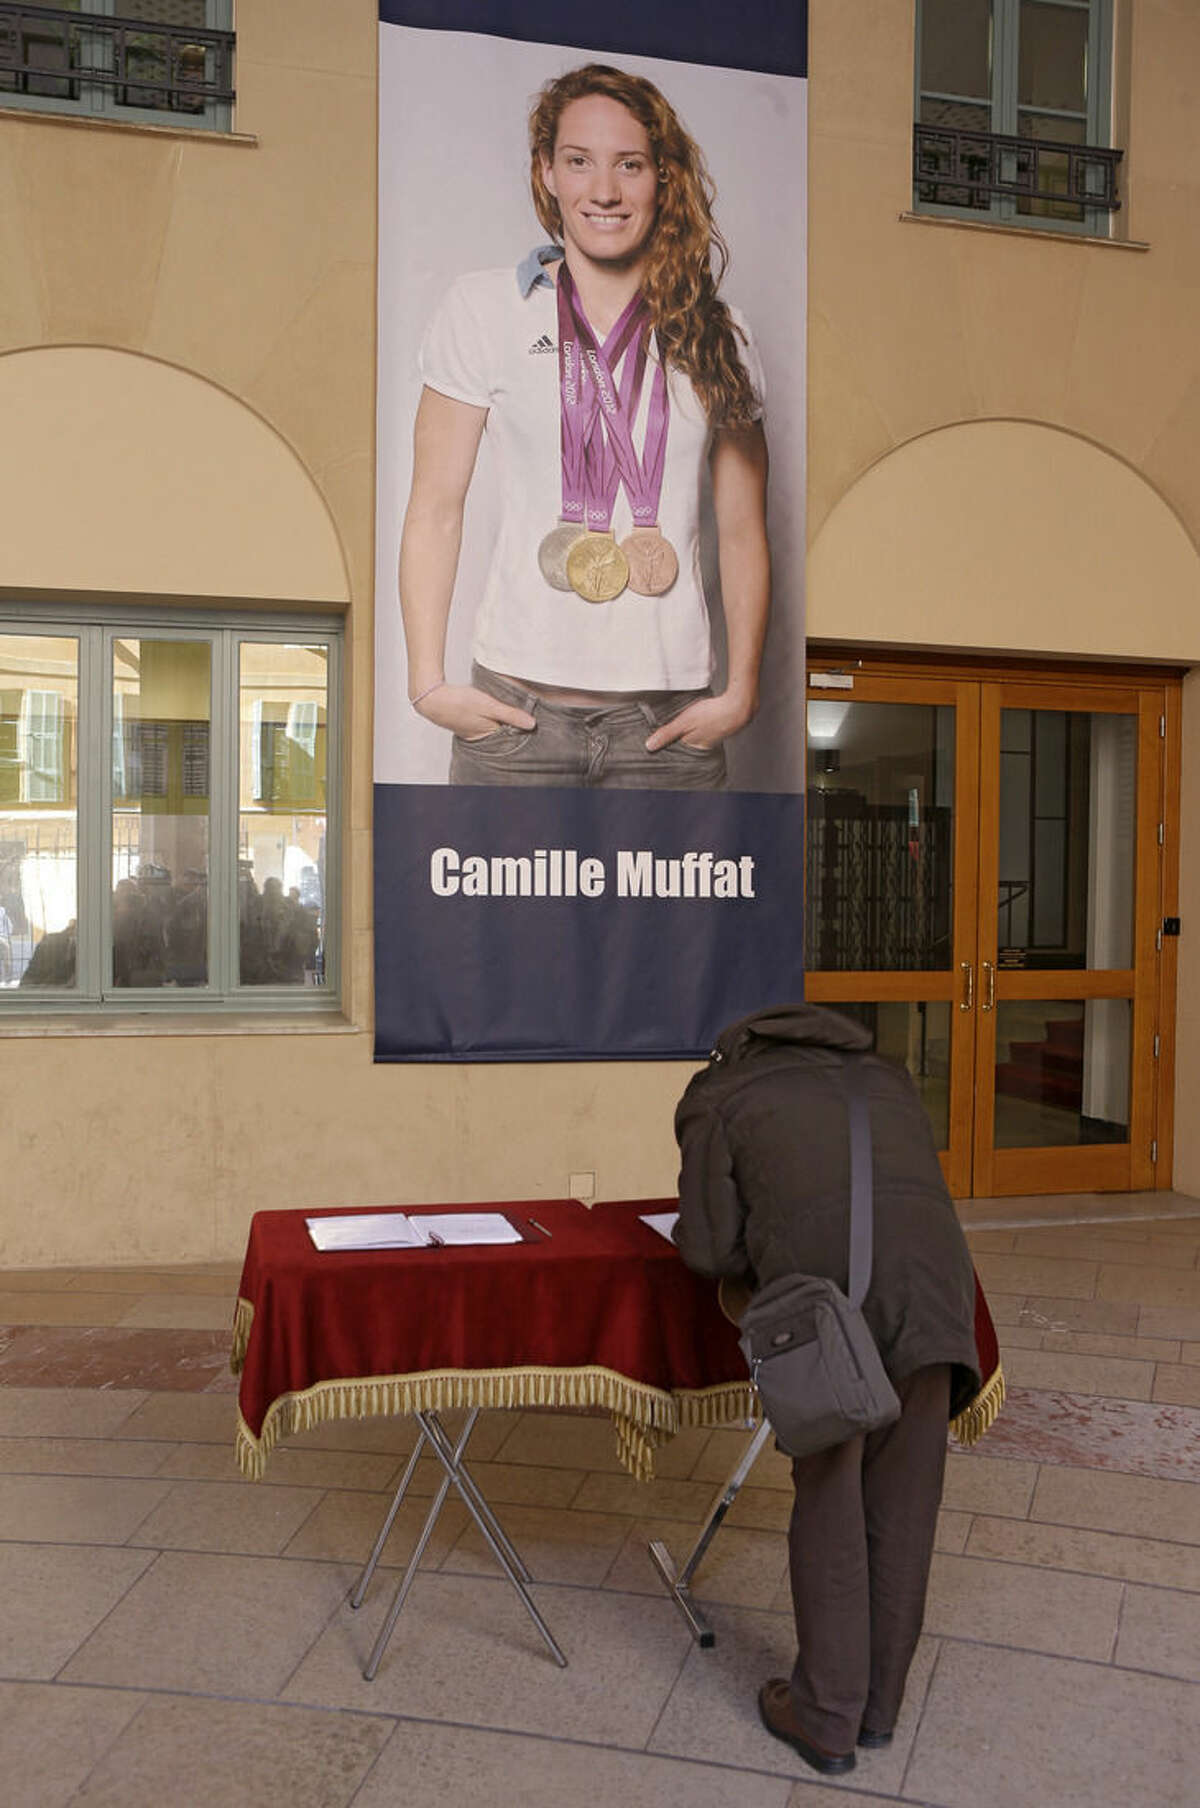 """A woman signs a book of condolence in front of poster of Olympic gold medalist swimmer Camille Muffat, Tuesday, March, 10, 2015, at the City Hall of Nice, southeastern France. Argentine recovery teams arrived March 10 at the site of a helicopter collision to recover the bodies of 10 people, including Muffat, 25, who was participating in the filming of the reality TV survival series """"Dropped"""" when two helicopters collided in mid-air, apparently while filming the show near the town of Villa Castilla in Argentina's La Rioja province. (AP Photo/Lionel Cironneau)"""